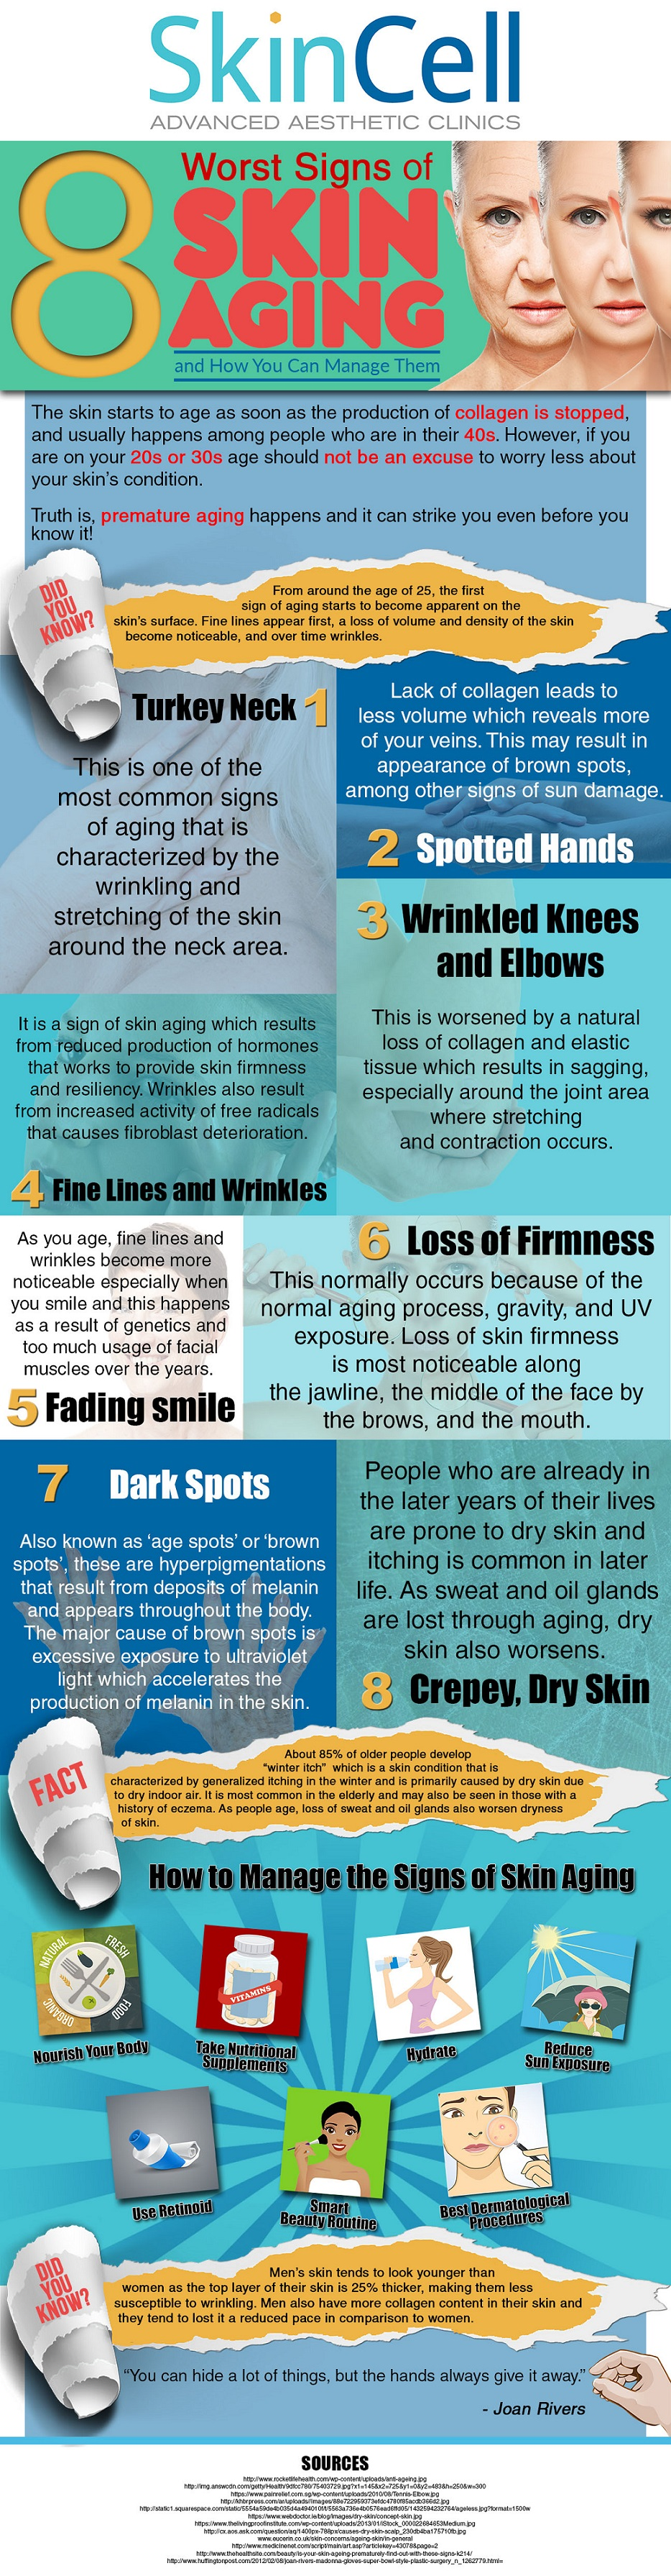 8 worst signs of skin aging infographic